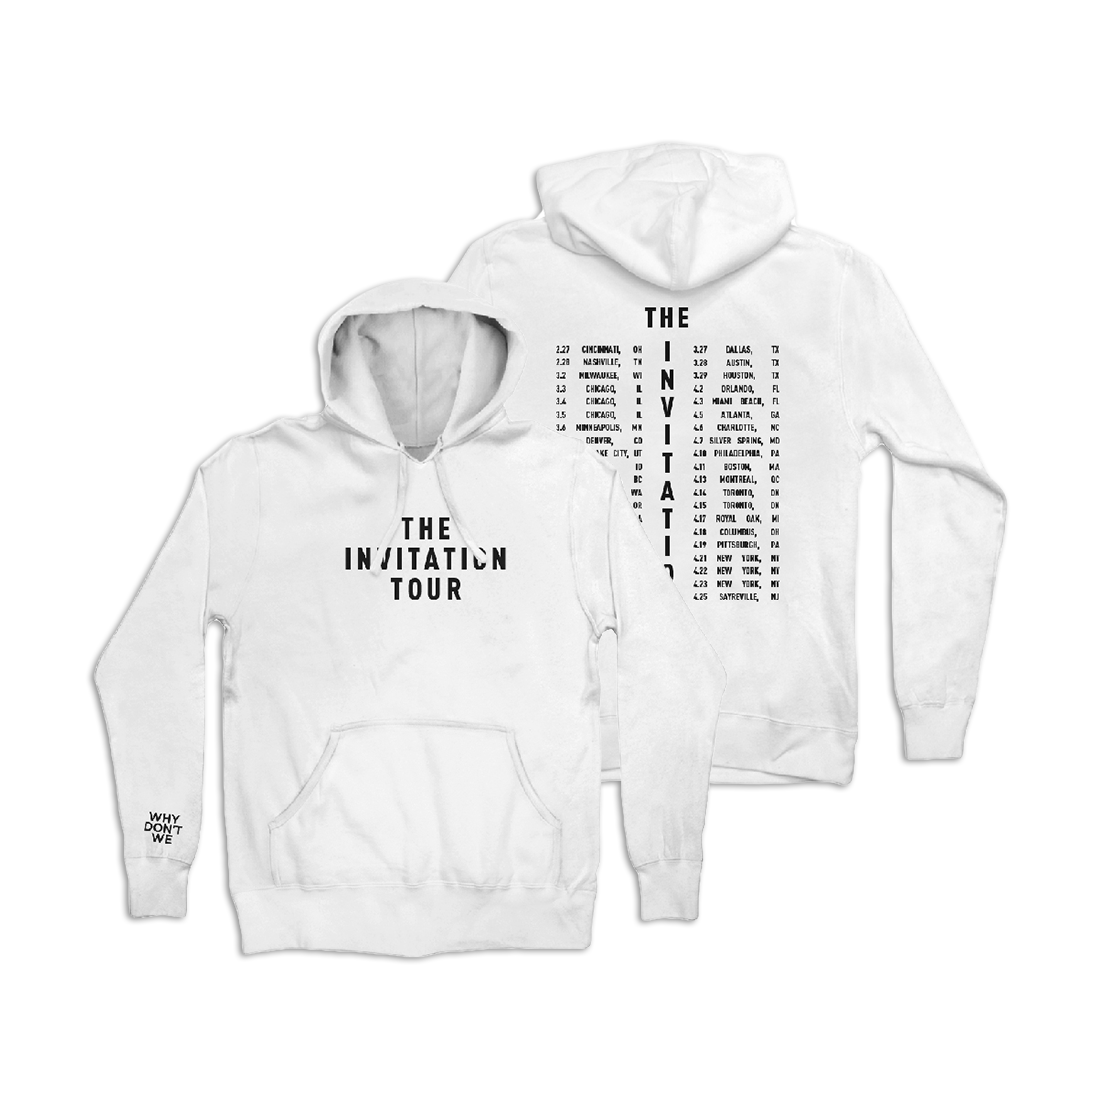 8851bd8a7 Invitation Tour Hoodie (White). $77.00. Brand: Why Don't We